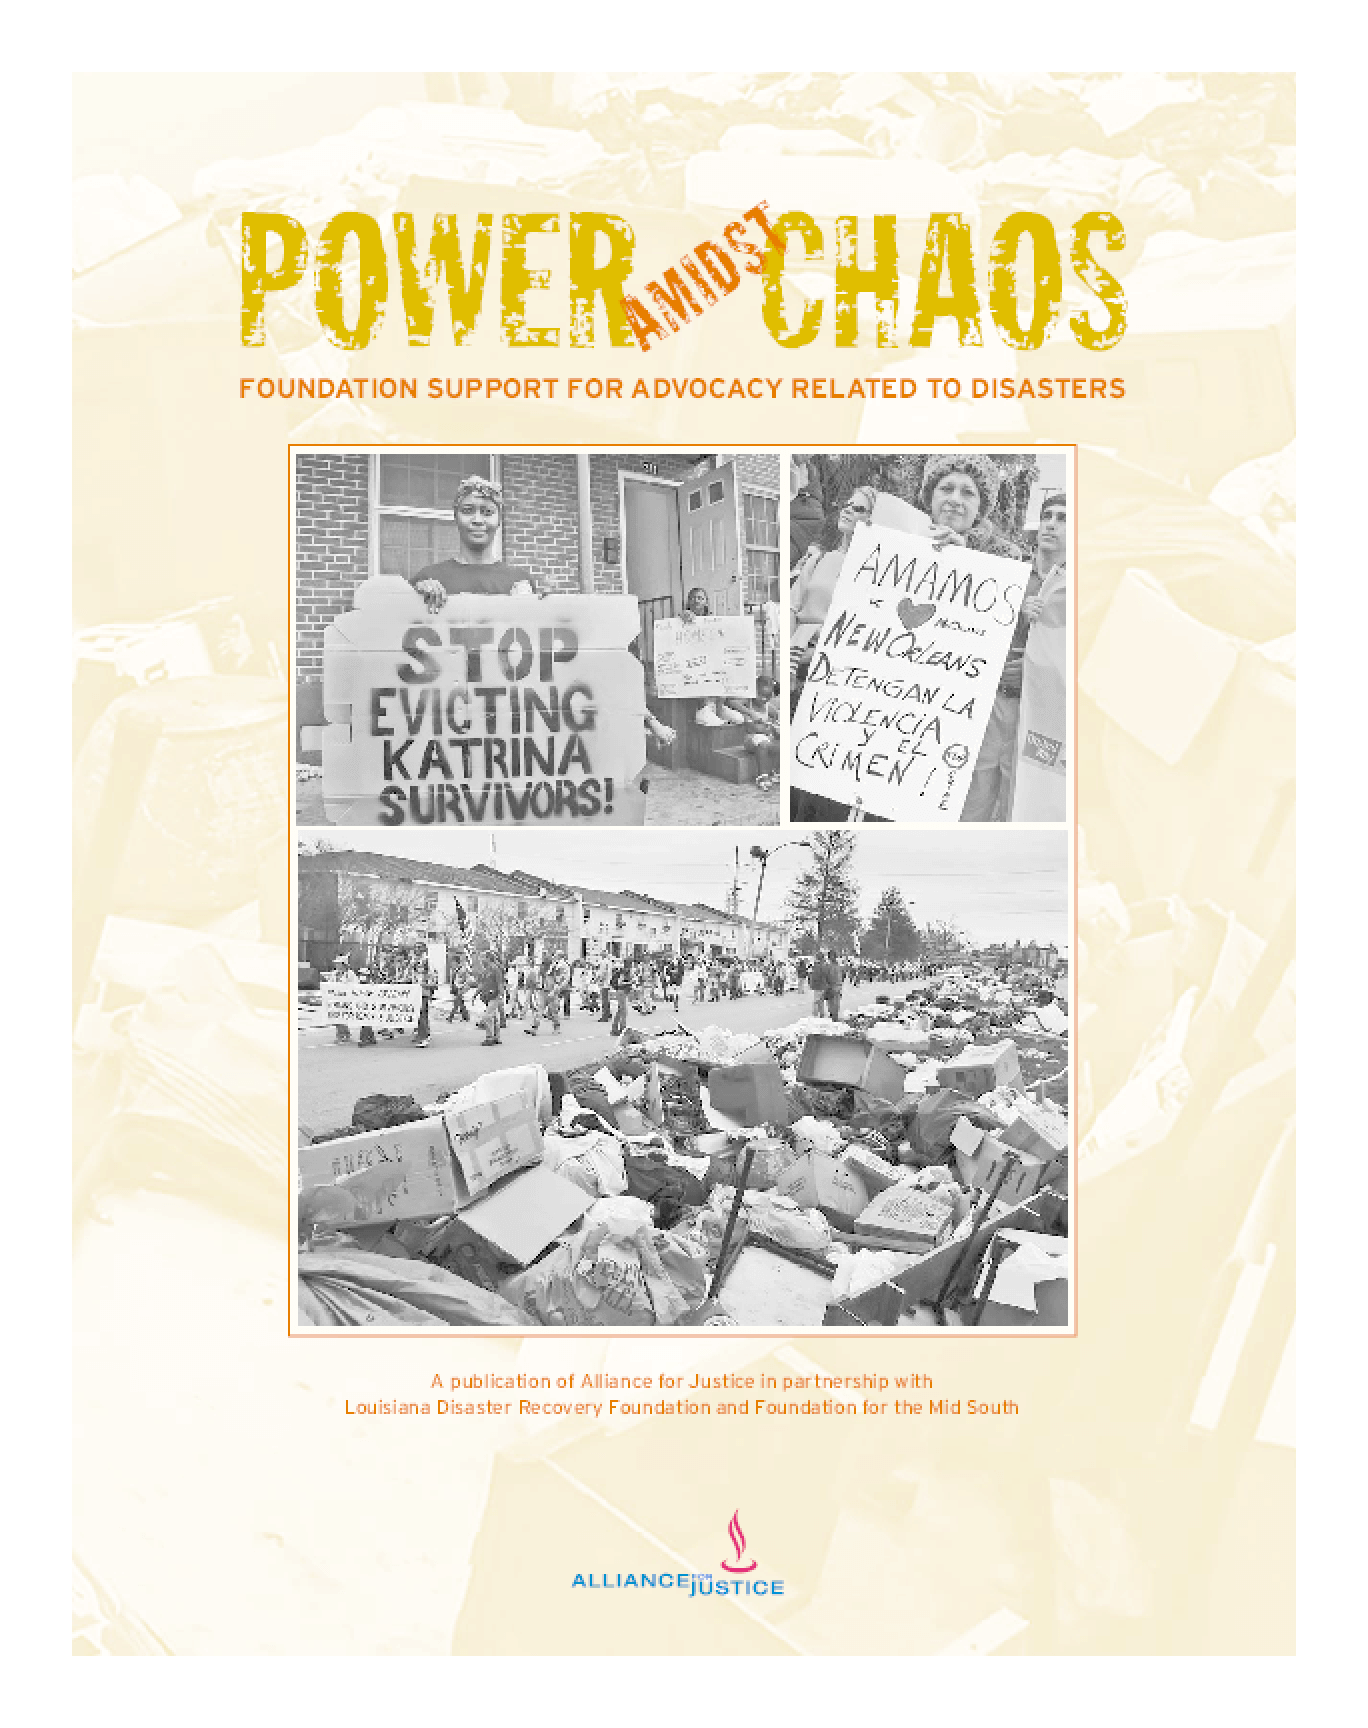 Power Amidst Chaos: Foundation Support for Advocacy Related to Disasters